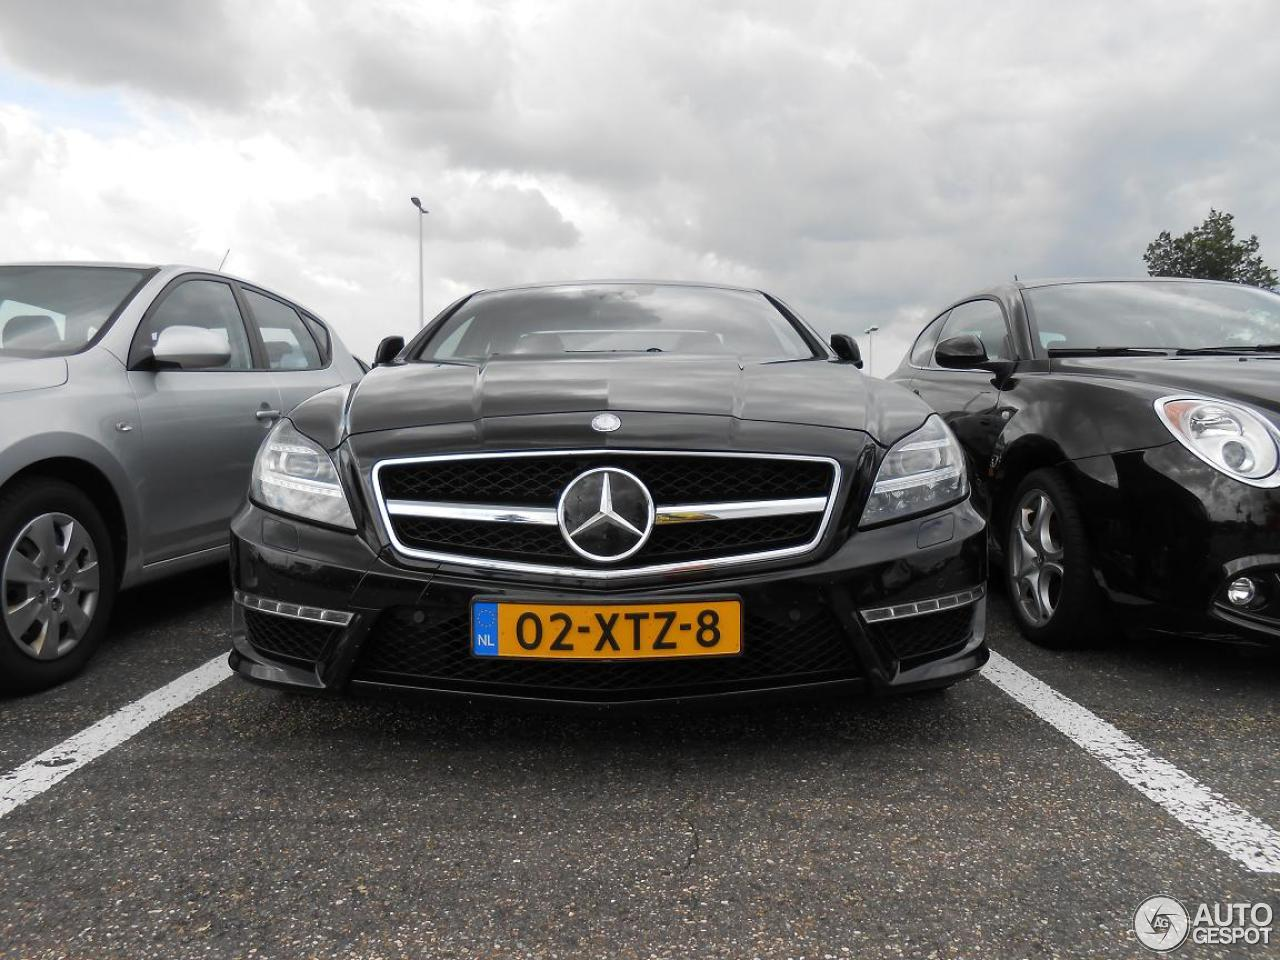 Mercedes benz cls 63 amg c218 15 october 2013 autogespot for 2013 mercedes benz cls 63 amg